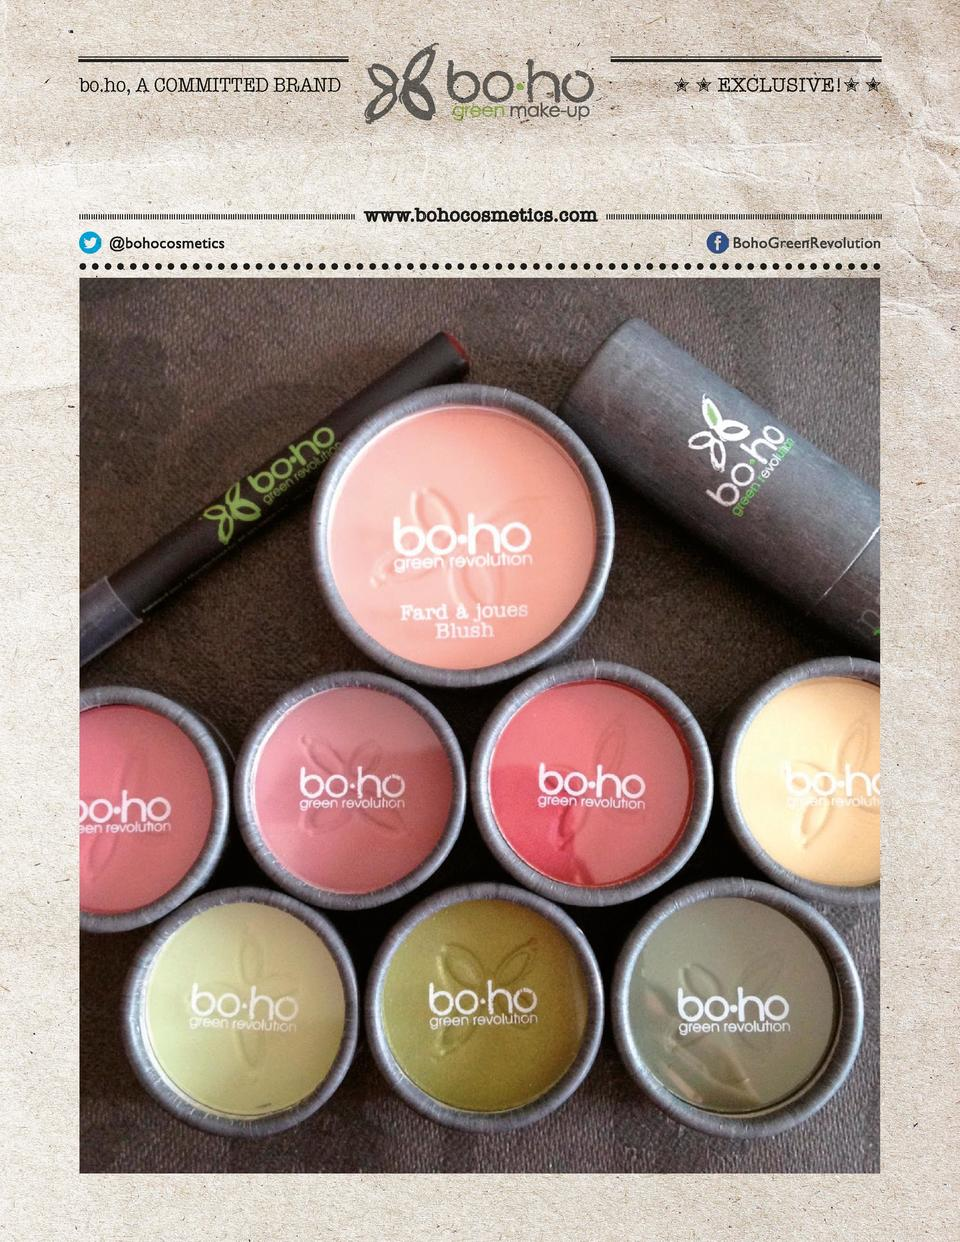 bo.ho, A COMMITTED BRAND          EXCLUSIVE          www.bohocosmetics.com